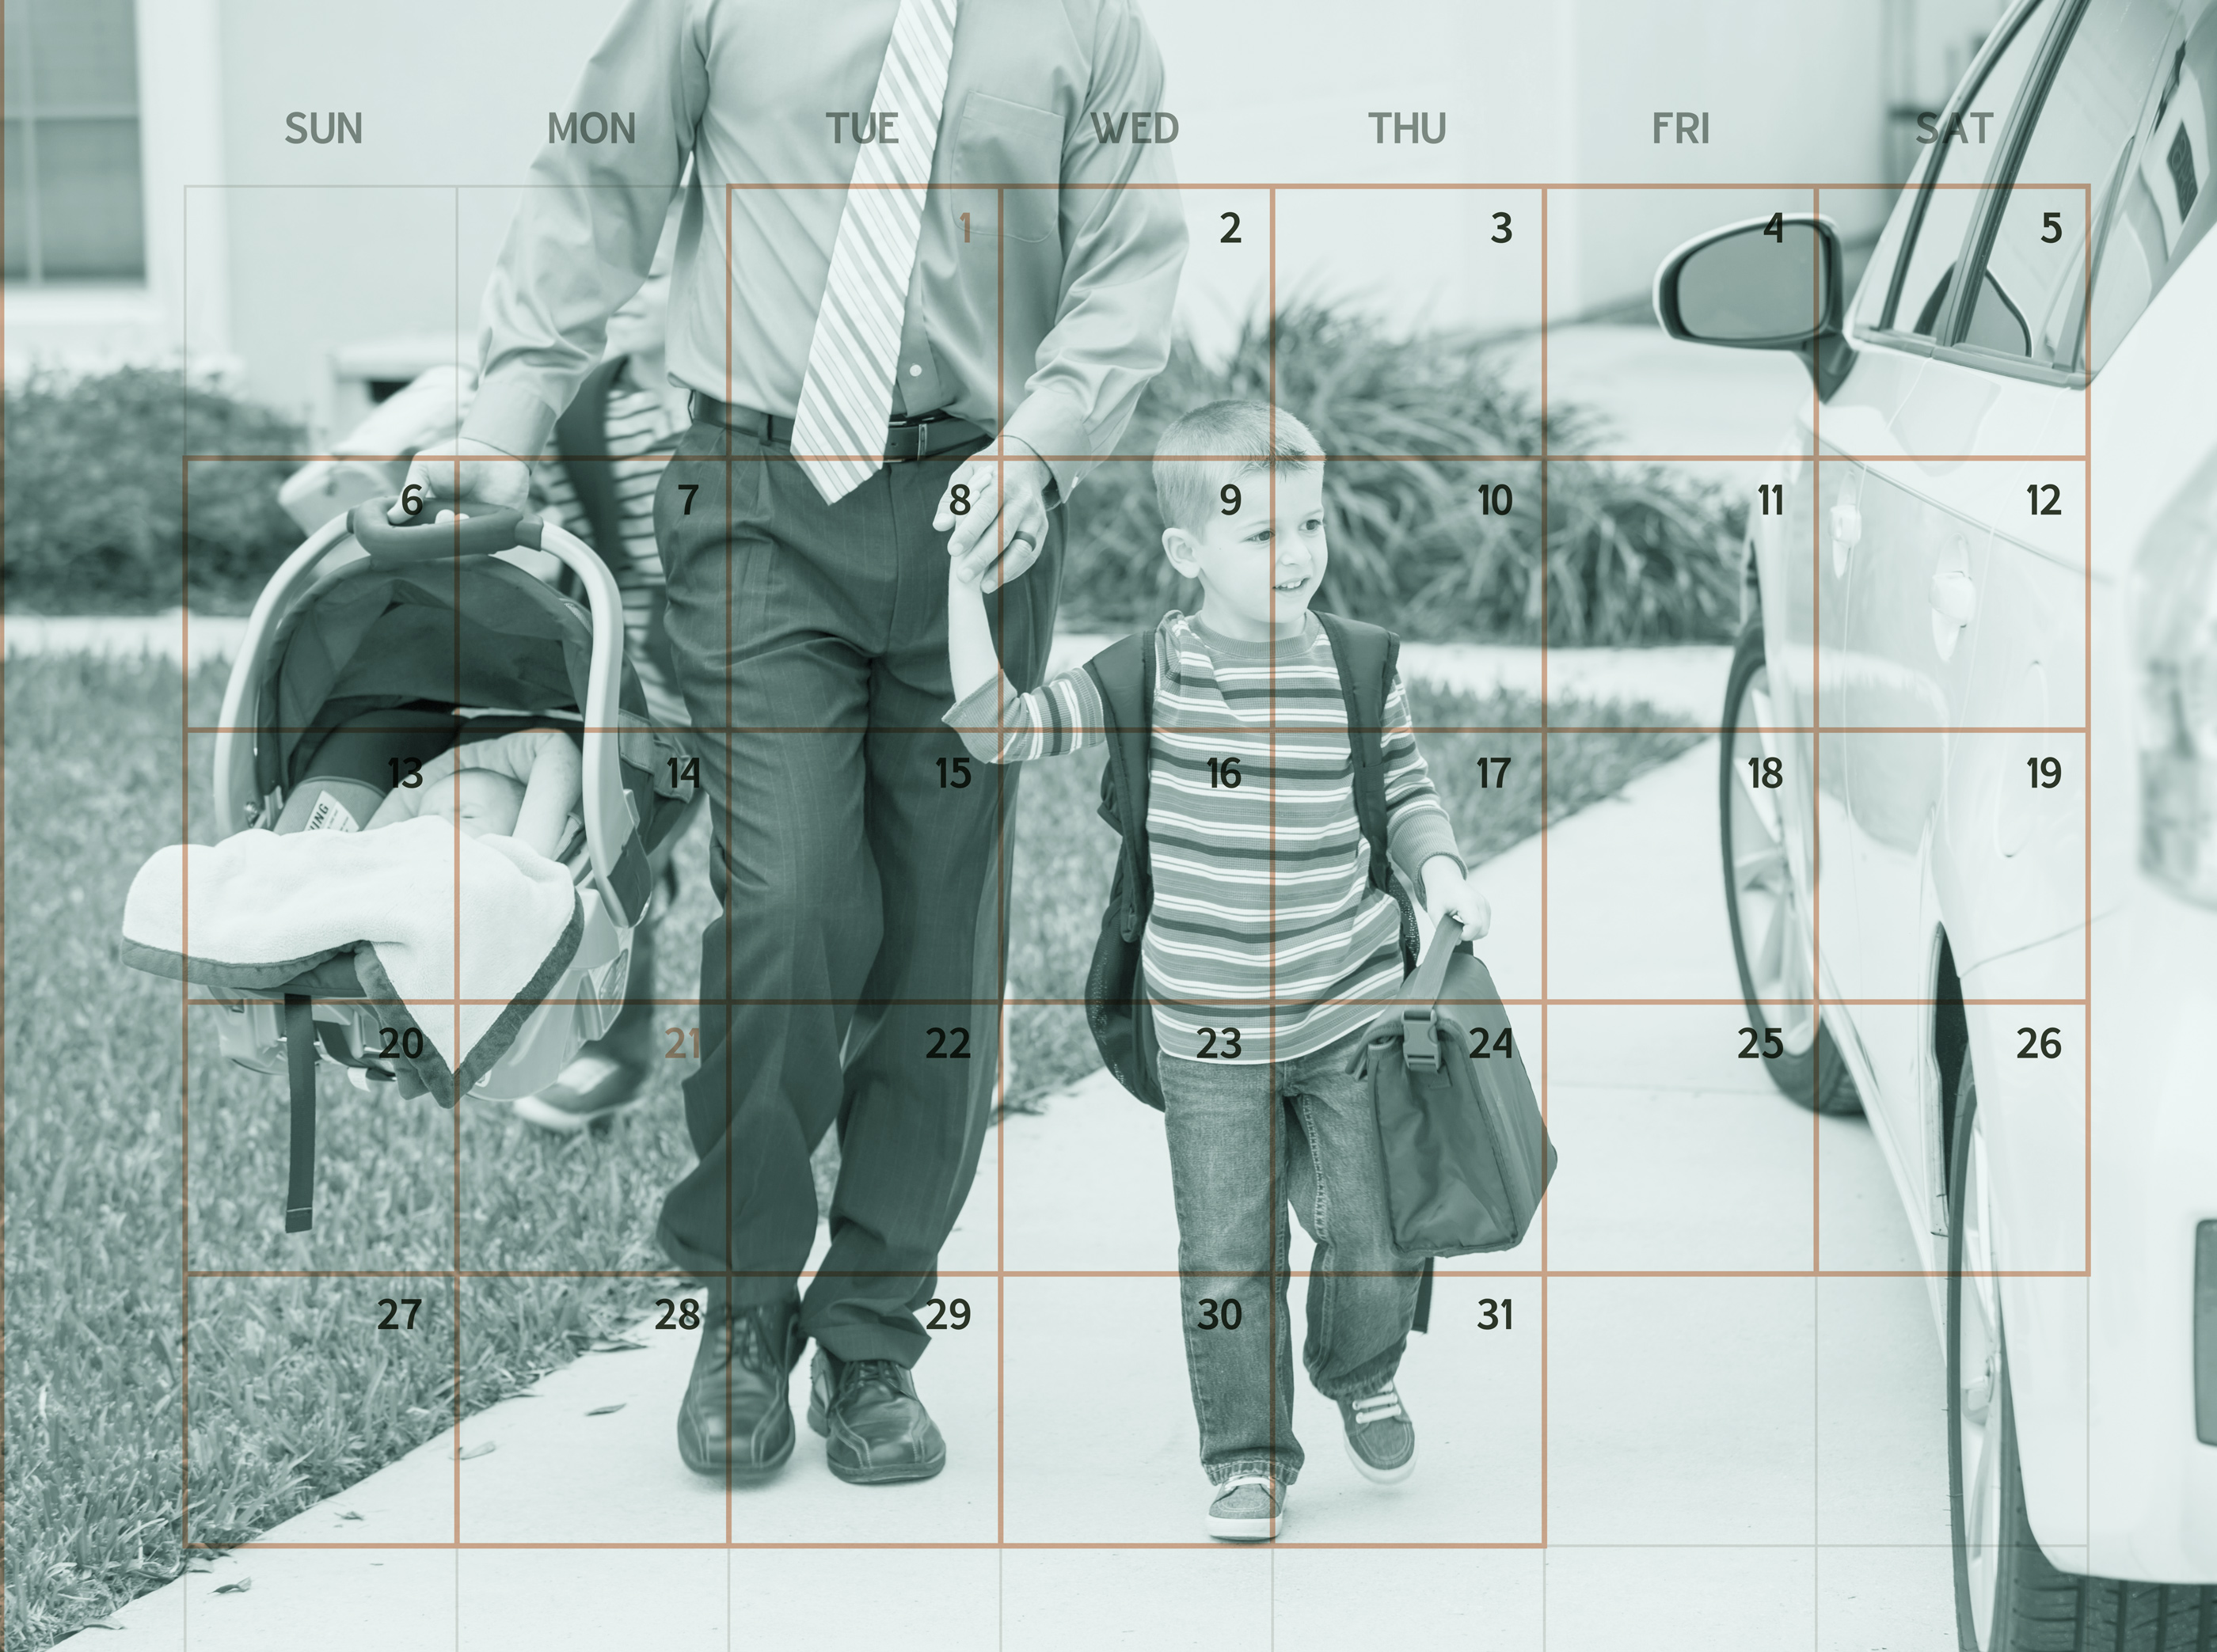 calendar on top of father taking kid to school